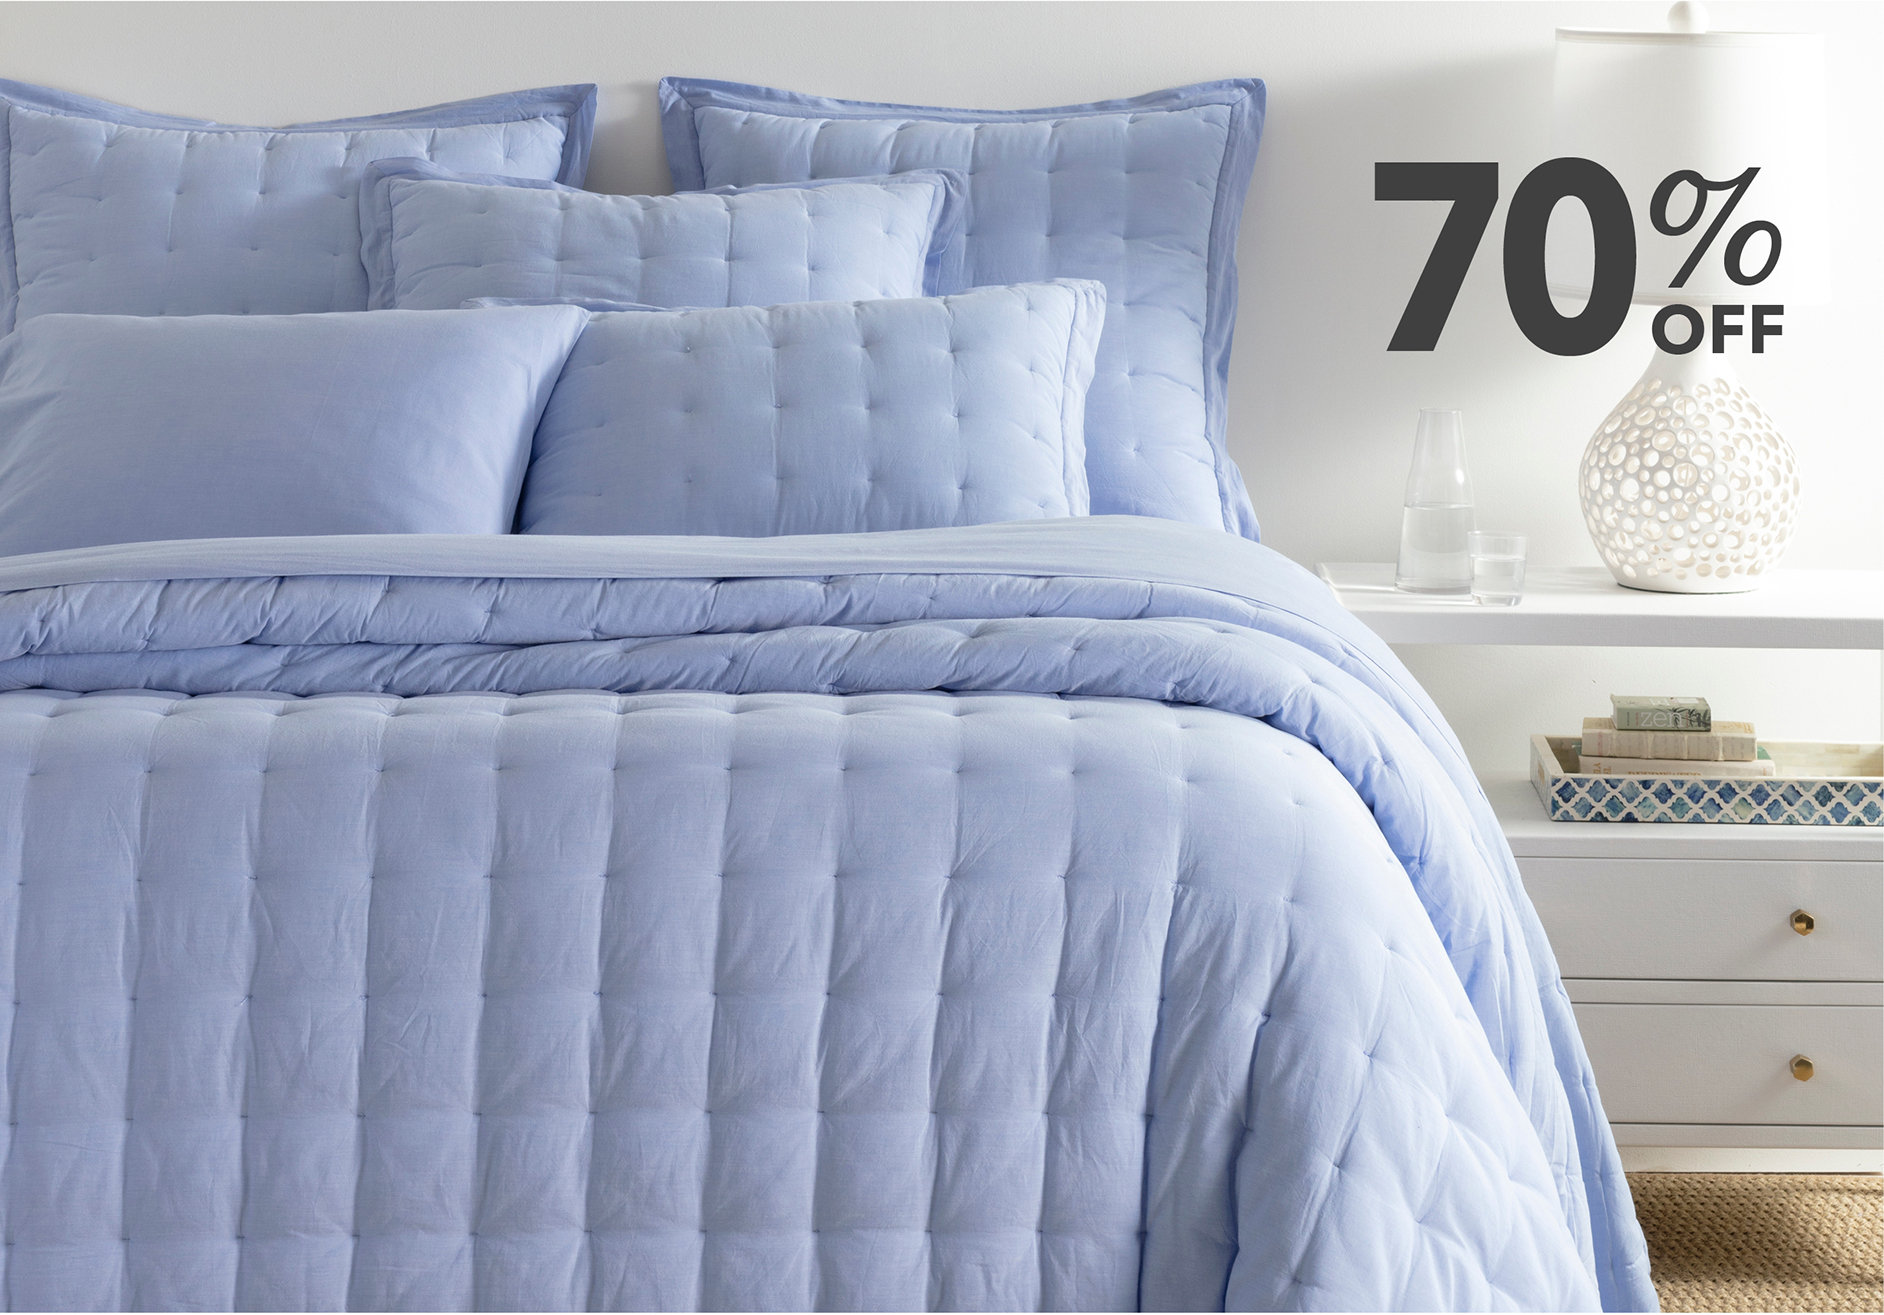 Shop Outlet Rugs